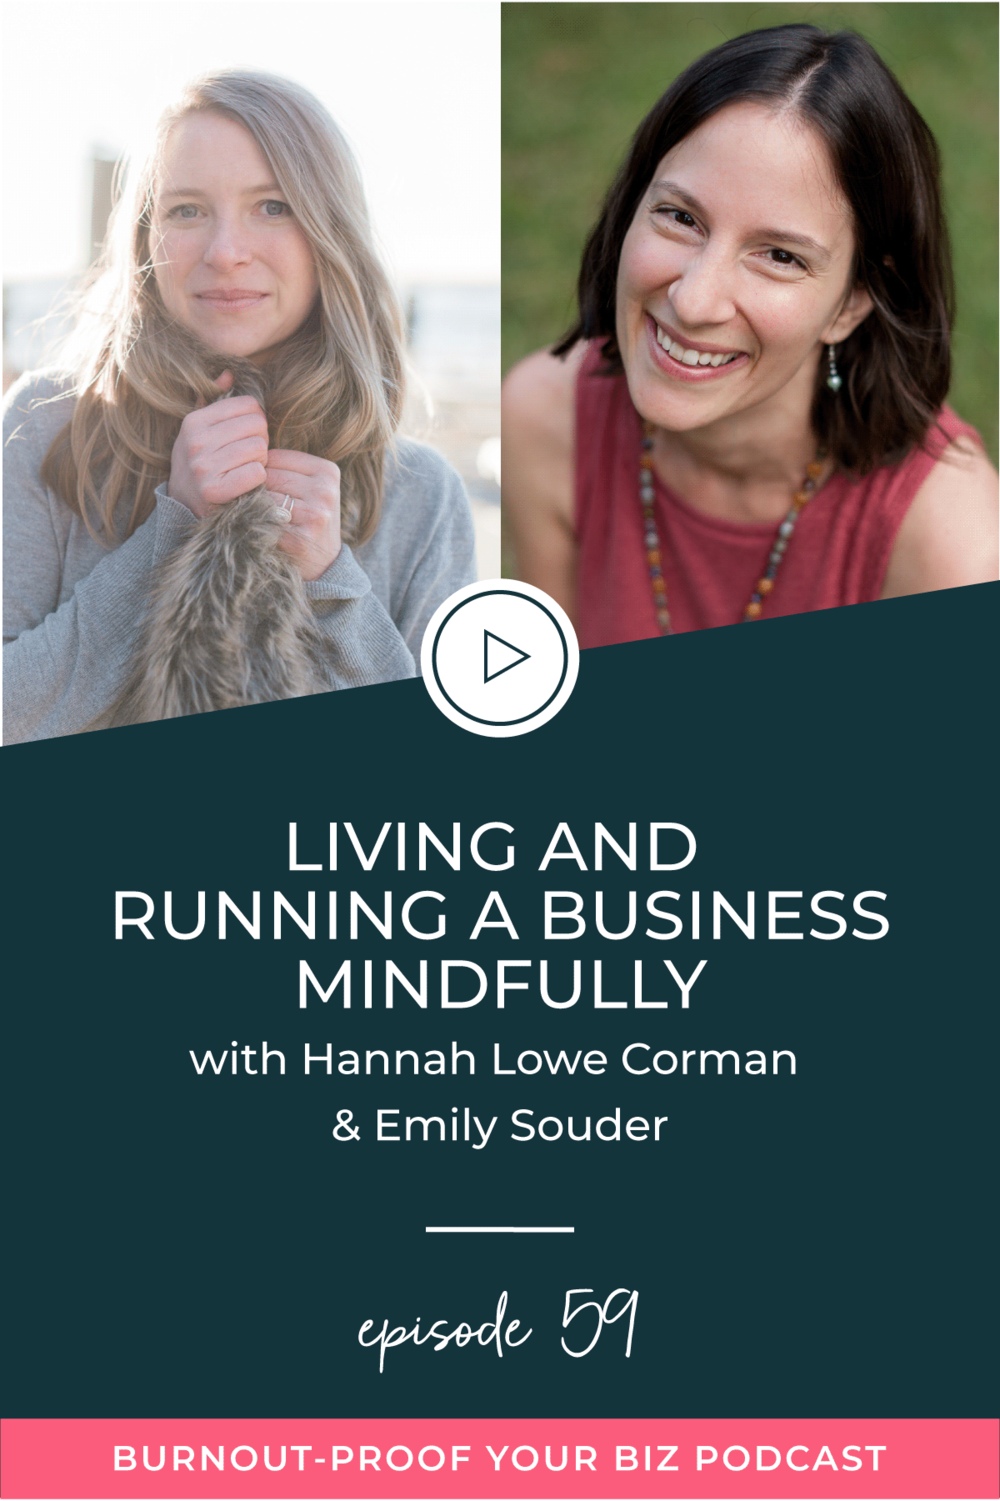 Burnout-Proof Your Biz Podcast with Chelsea B Foster | Episode 059 - Living and Running a Business Mindfully with Hannah Lowe Corman and Emily Souder | Learn how to run your biz and live your dream life on your own terms without the fear of burnout | Learn how to run your biz and live your dream life on your own terms without the fear of burnout.  |||  LIVING MINDFULLY | SELF-LOVE FOR ENTREPRENEURS | MINDFUL MEDITATIONS FOR MOMS | REIKI HEALING | MUTLI-PASSIONATE CREATIVES | BUSINESS BESTIES